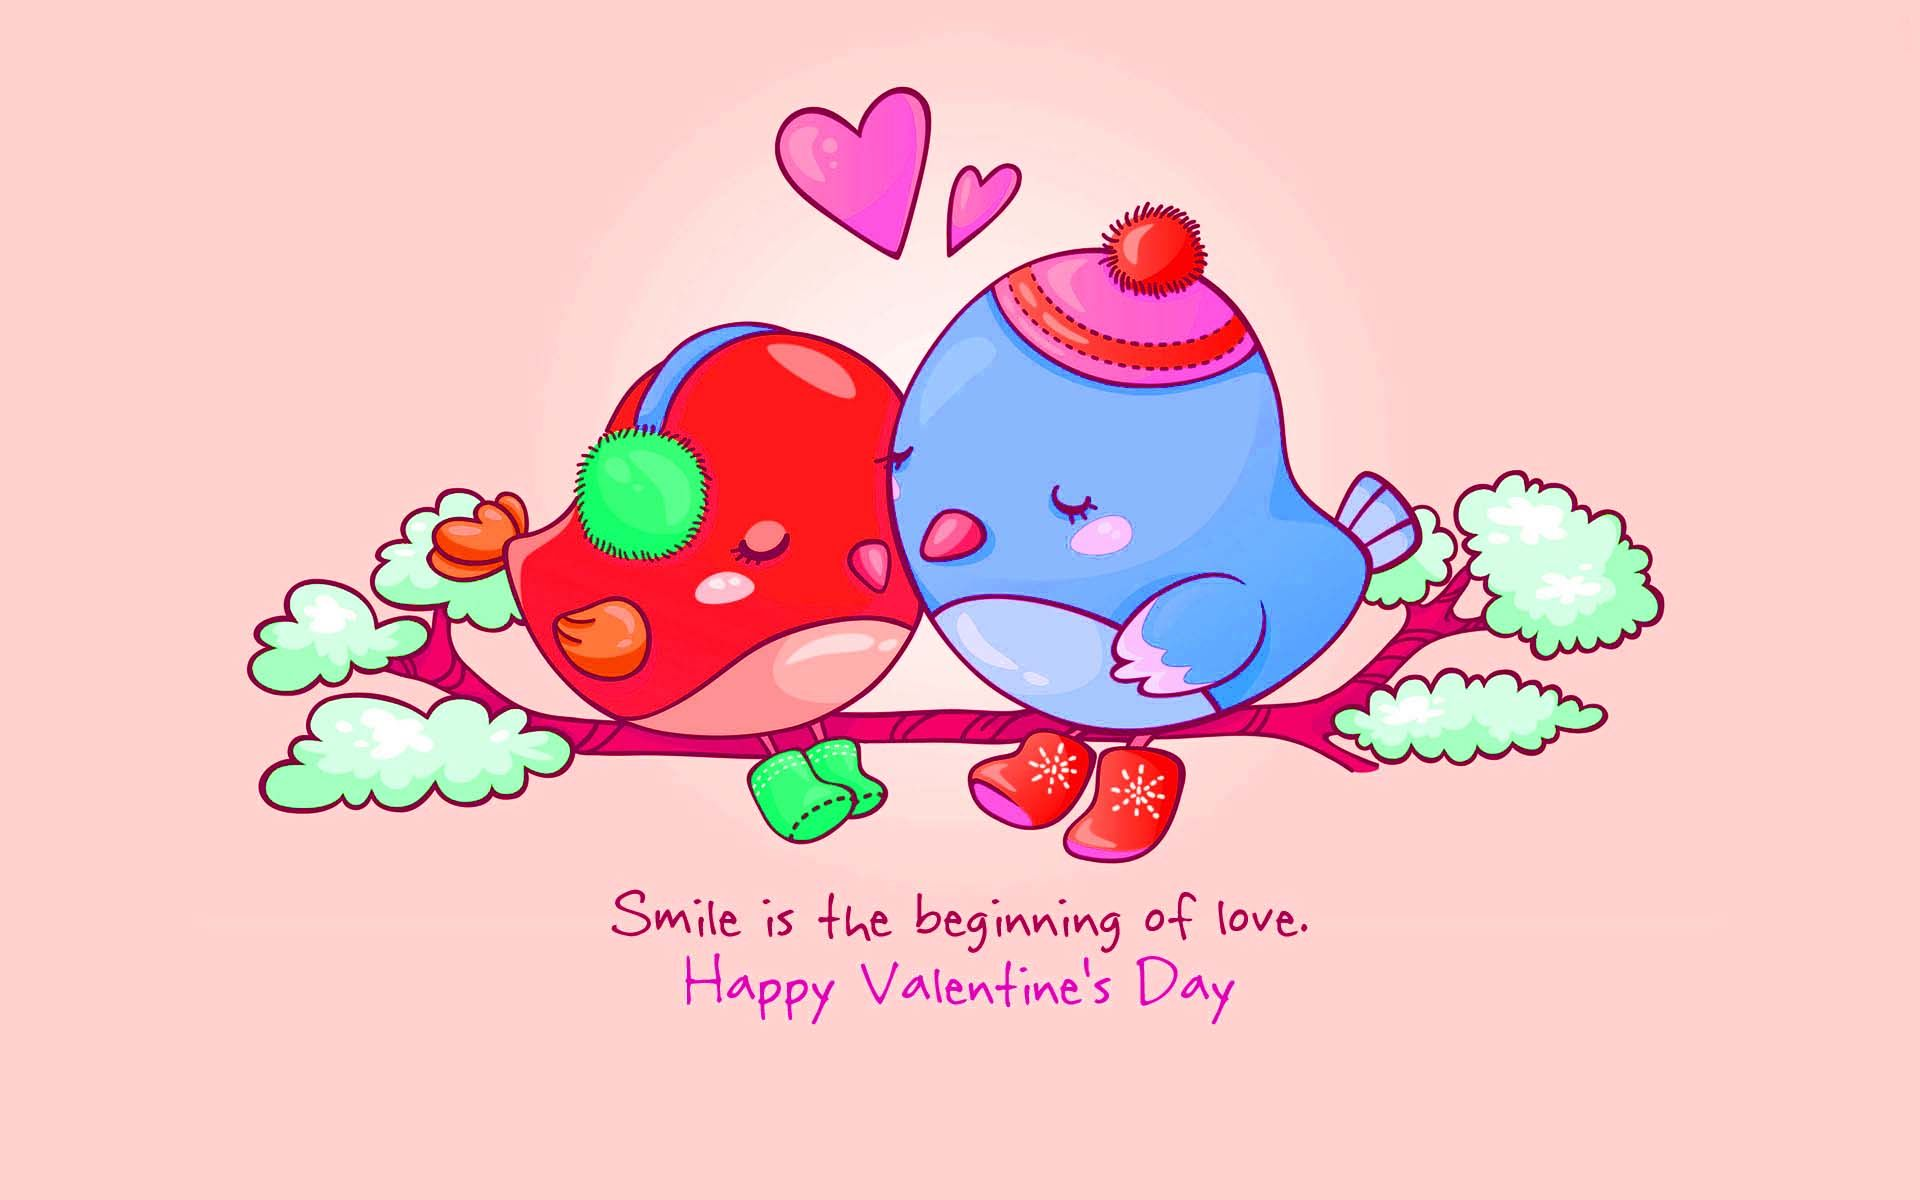 Schön Cute Valentineu0027s Day Wallpaper | Happy Valentineu0027s Day HD Wallpaper 2016